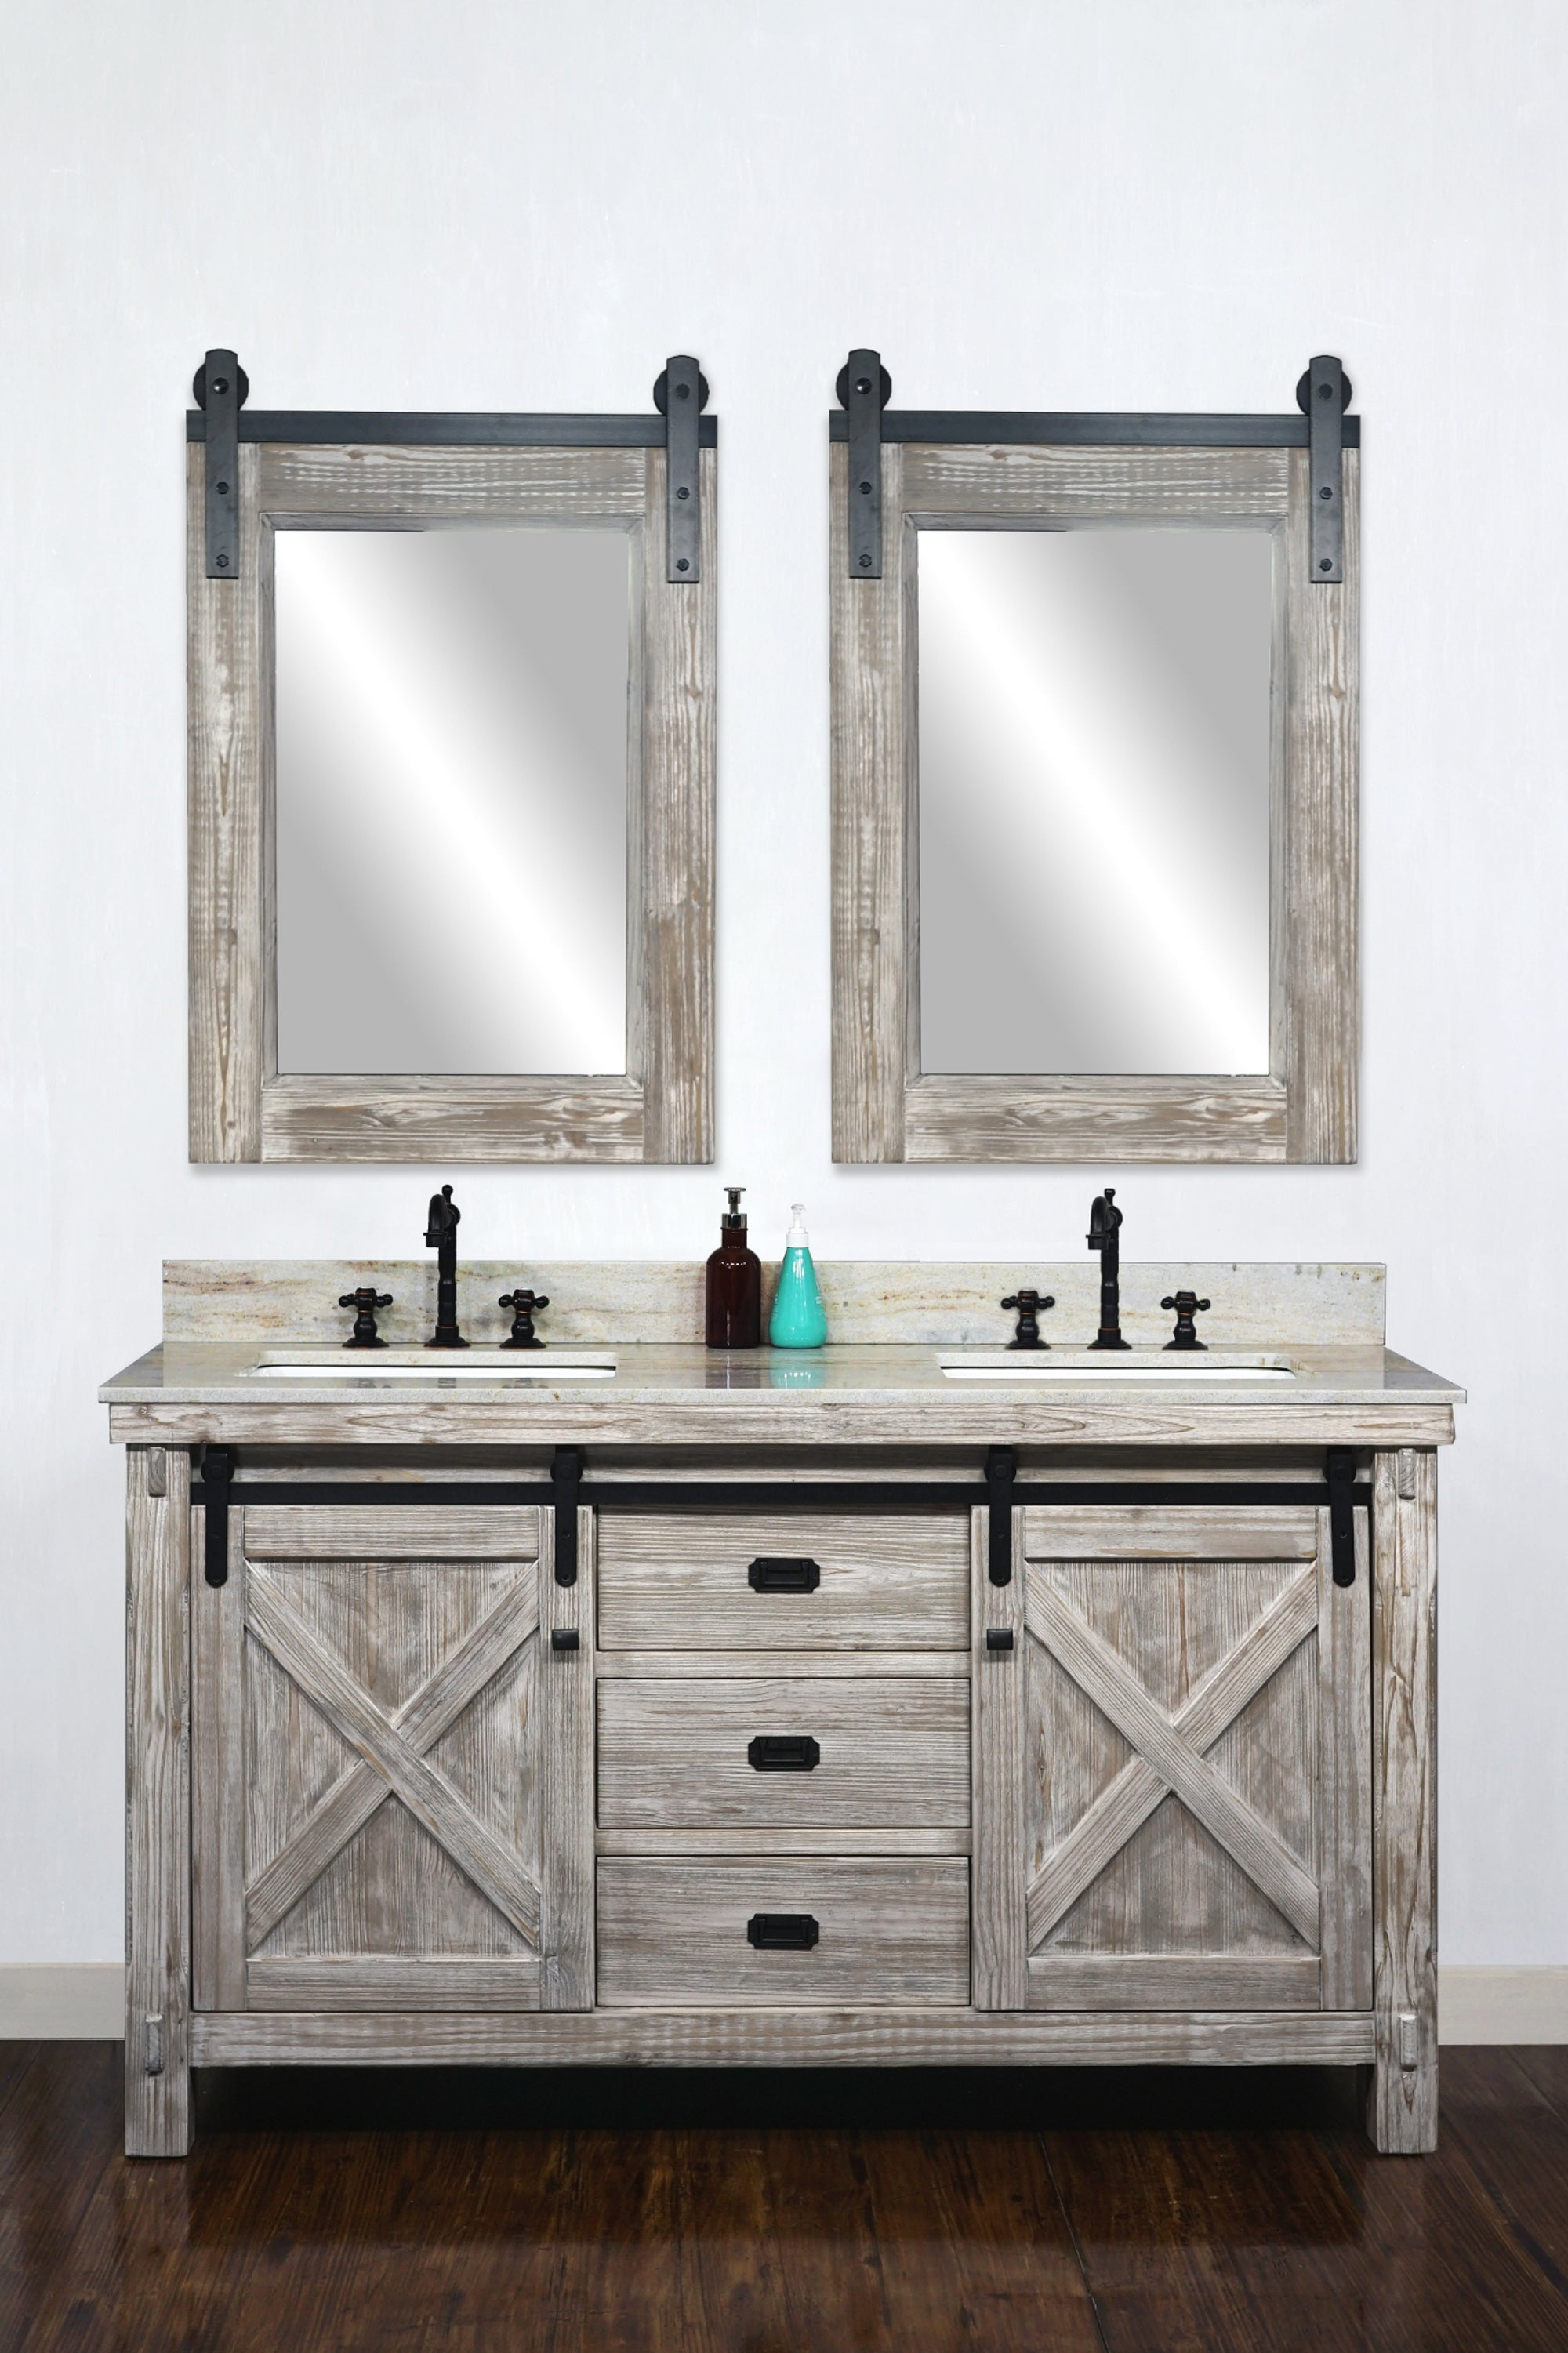 """15""""RUSTIC SOLID FIR BARN DOOR STYLE DOUBLE SINKS VANITY IN WHITE WASH WITH  COASTAL SANDS MARBLE TOP WITH RECTANGULAR SINK-NO FAUCET"""